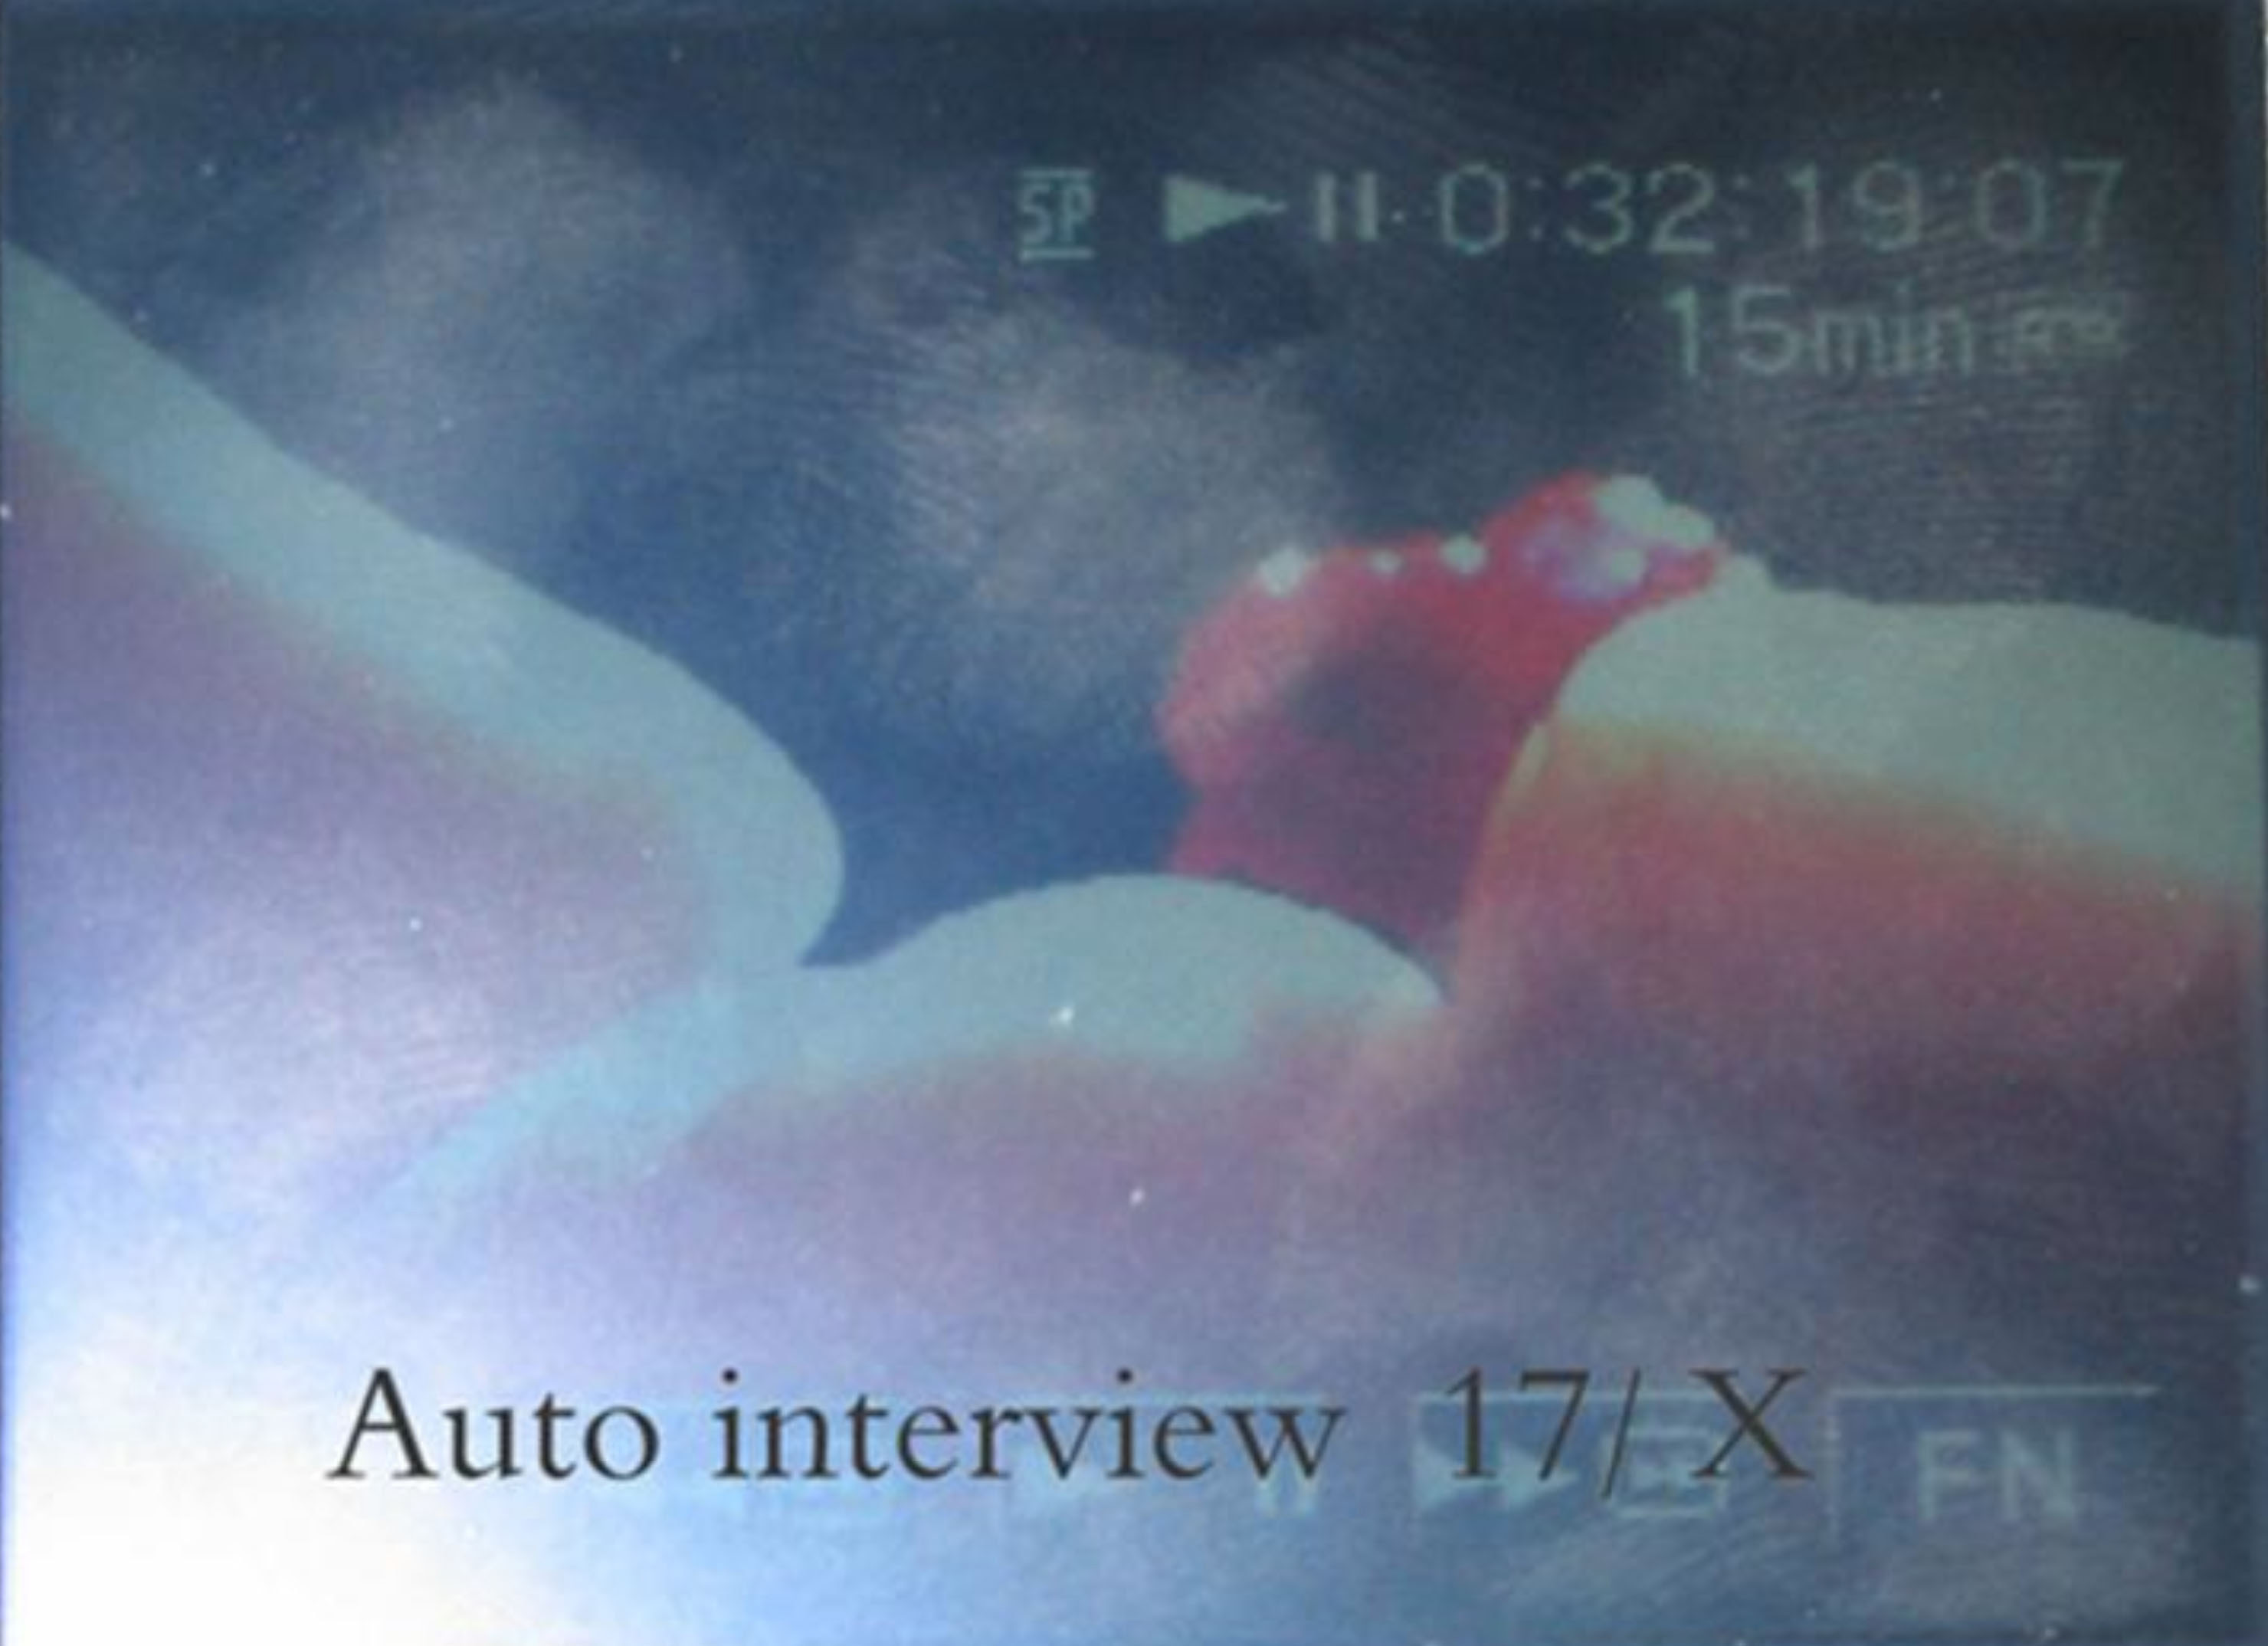 Auto-interview